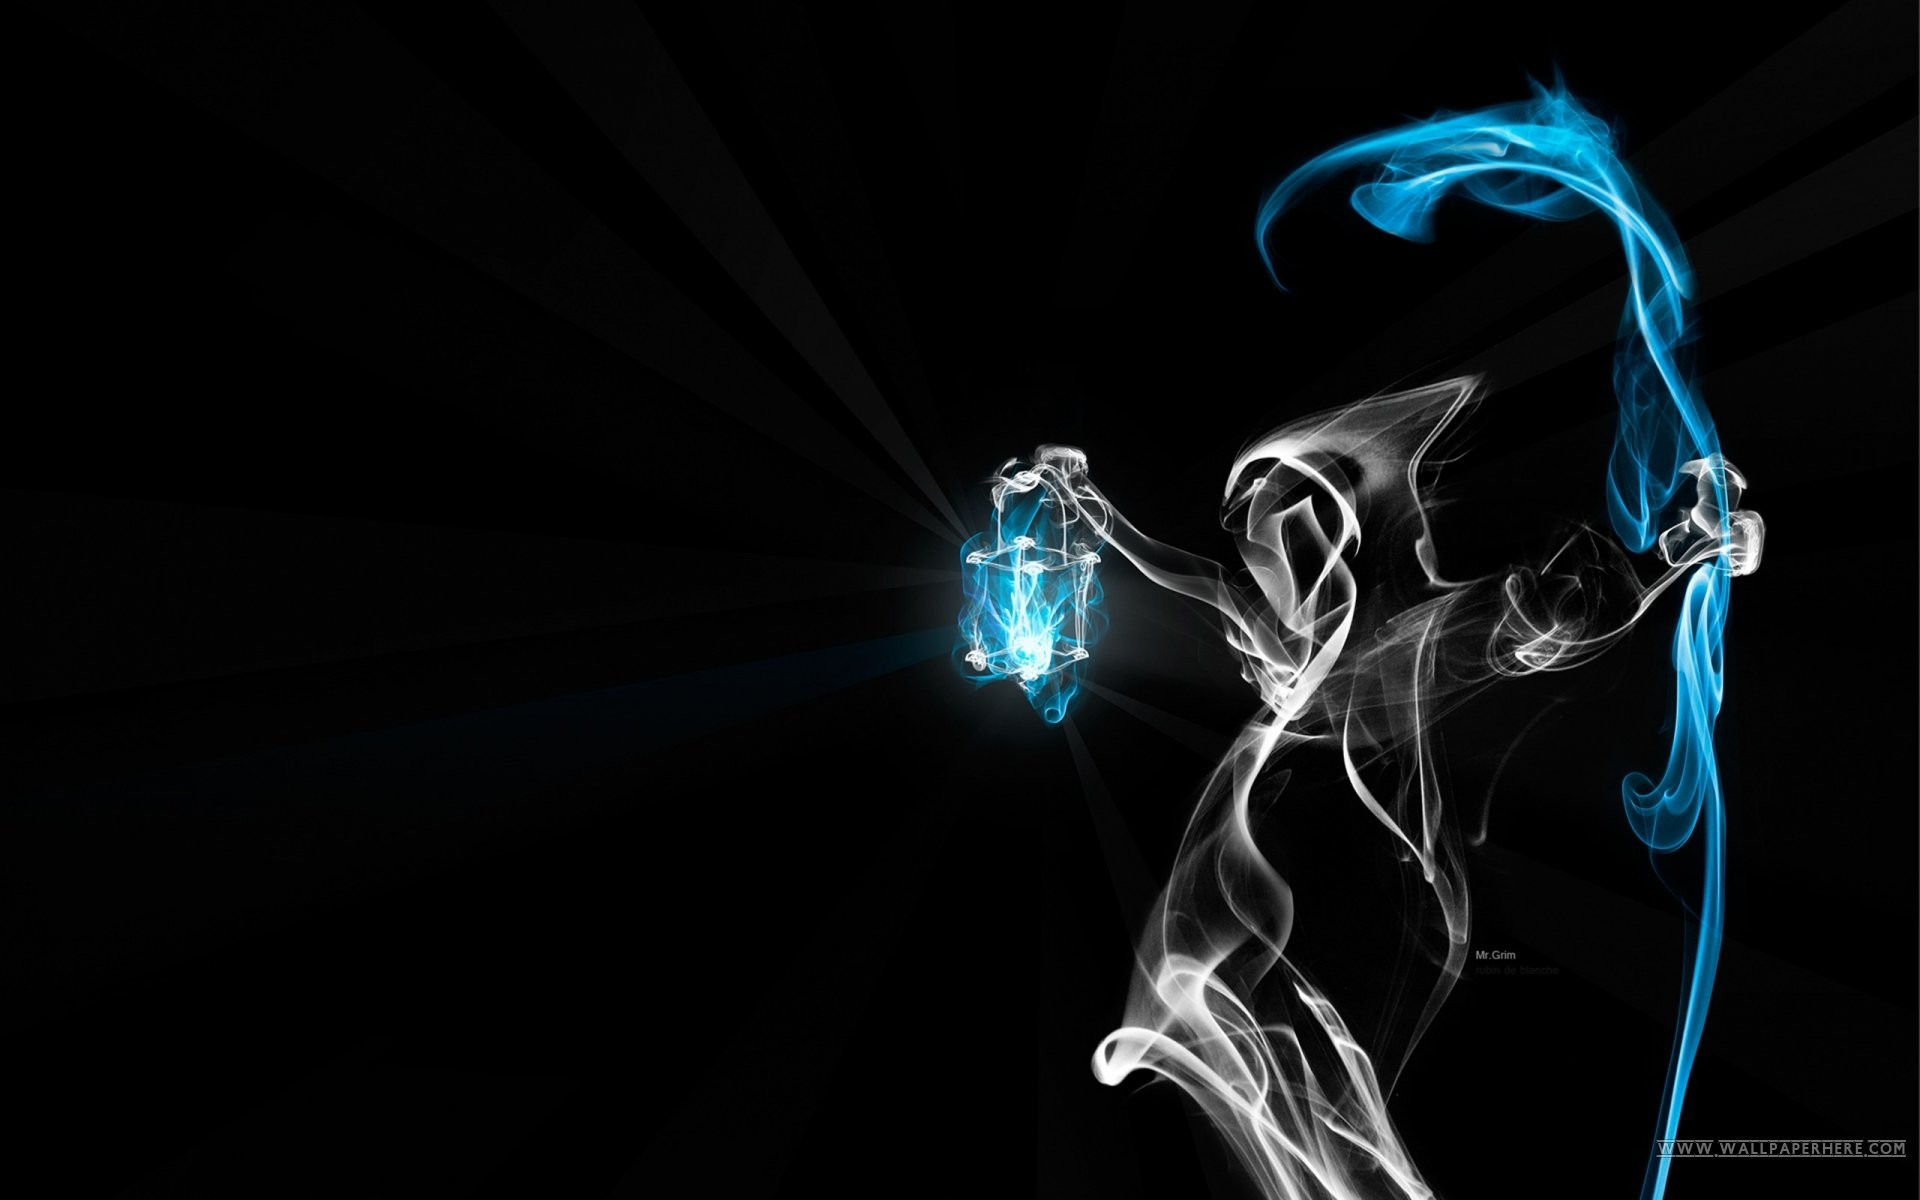 Ghost Smoke. SHARE. TAGS: Art Blue Abstract Black